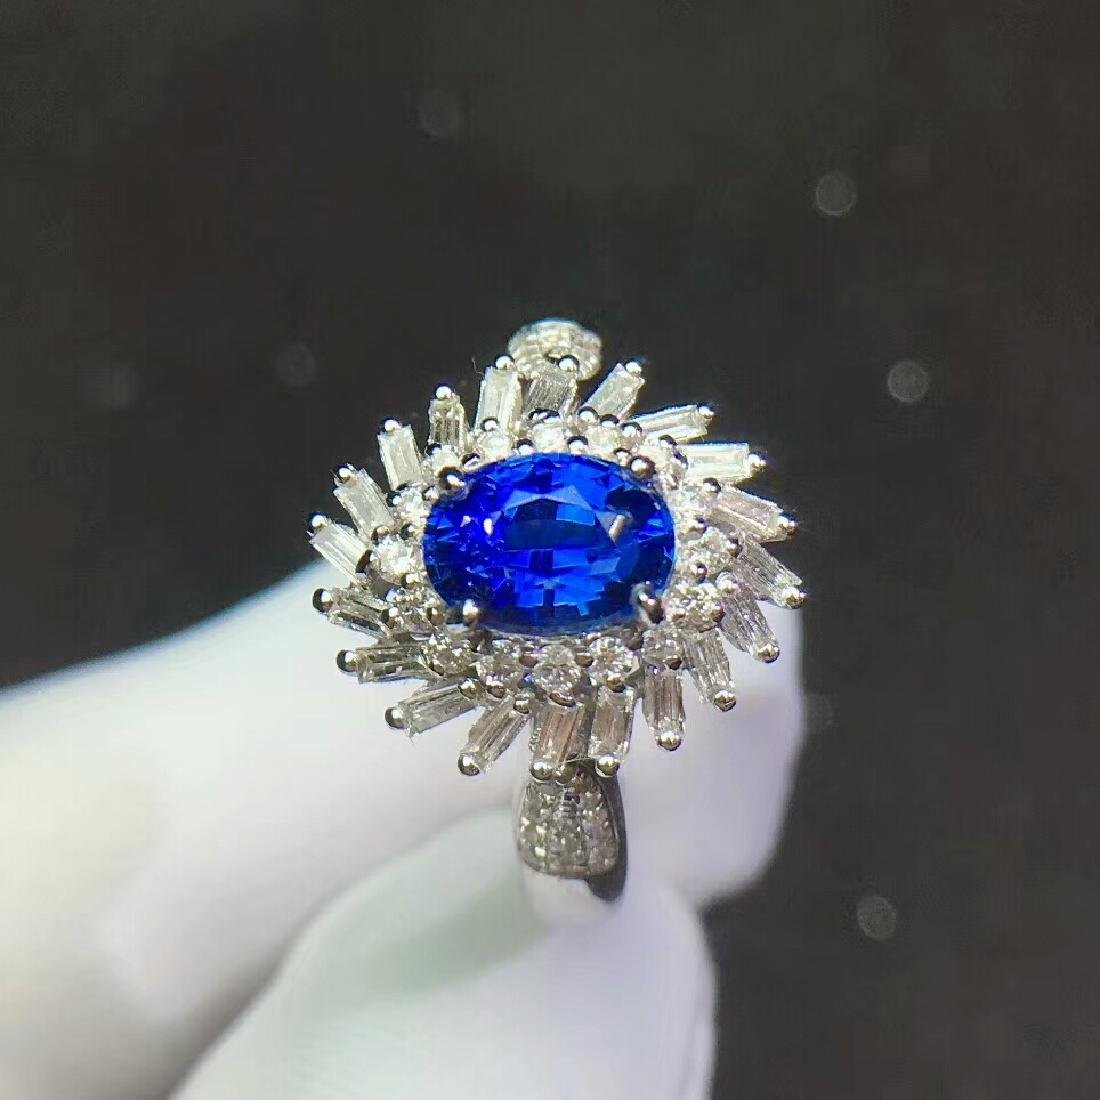 1.3ct Sapphire Ring in 18kt White Gold - 5